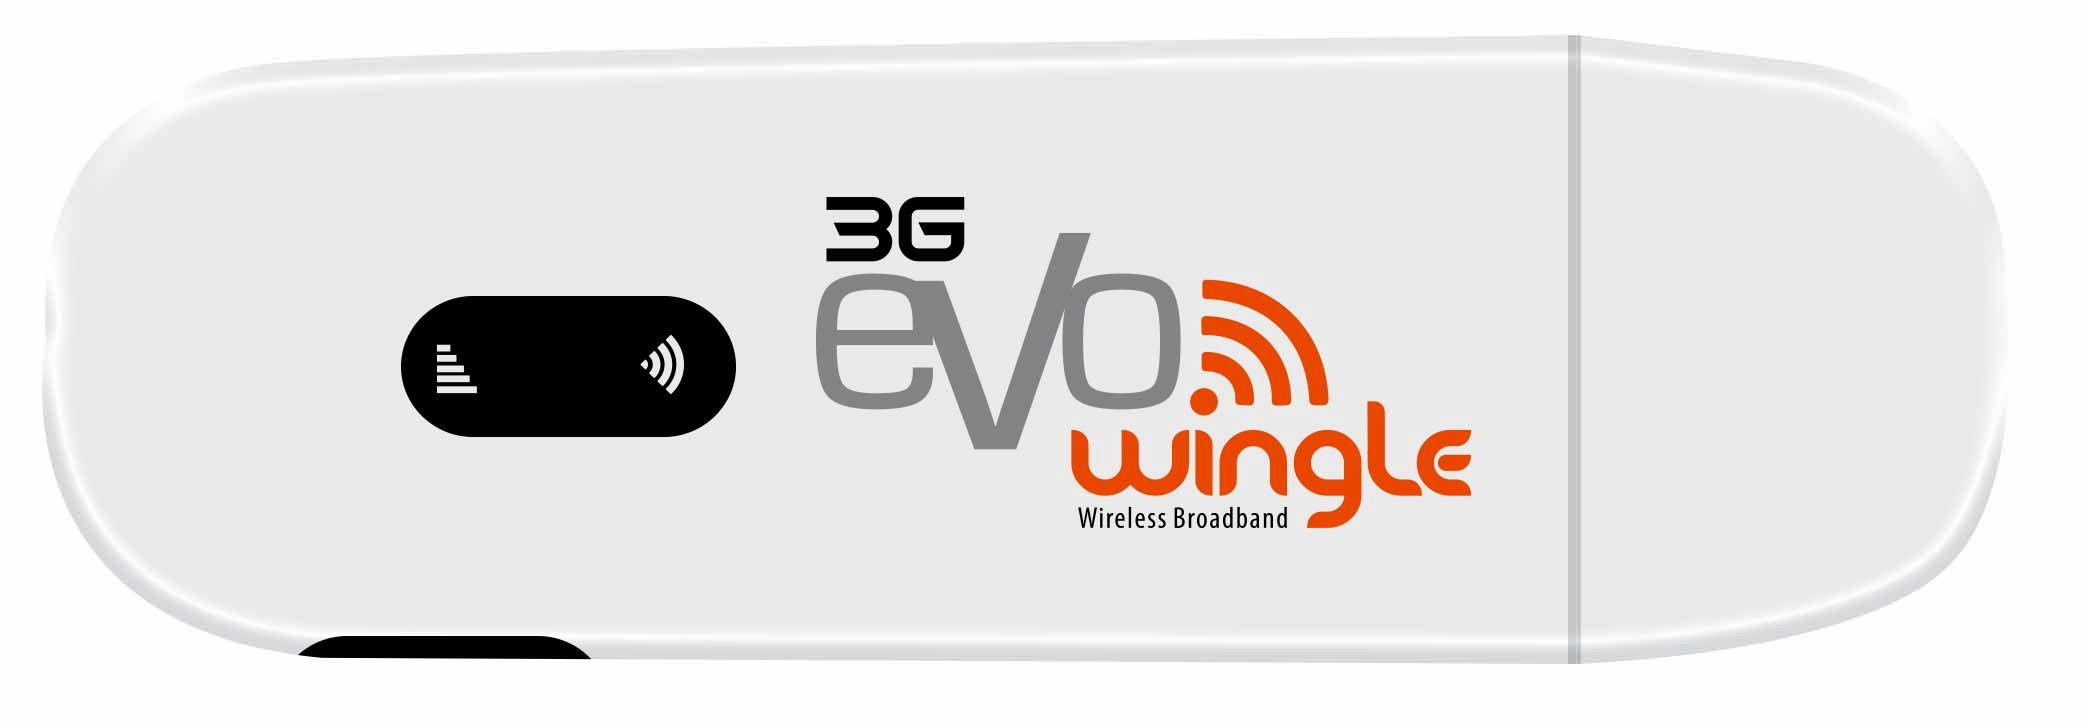 3G EVO Wingle 9 3